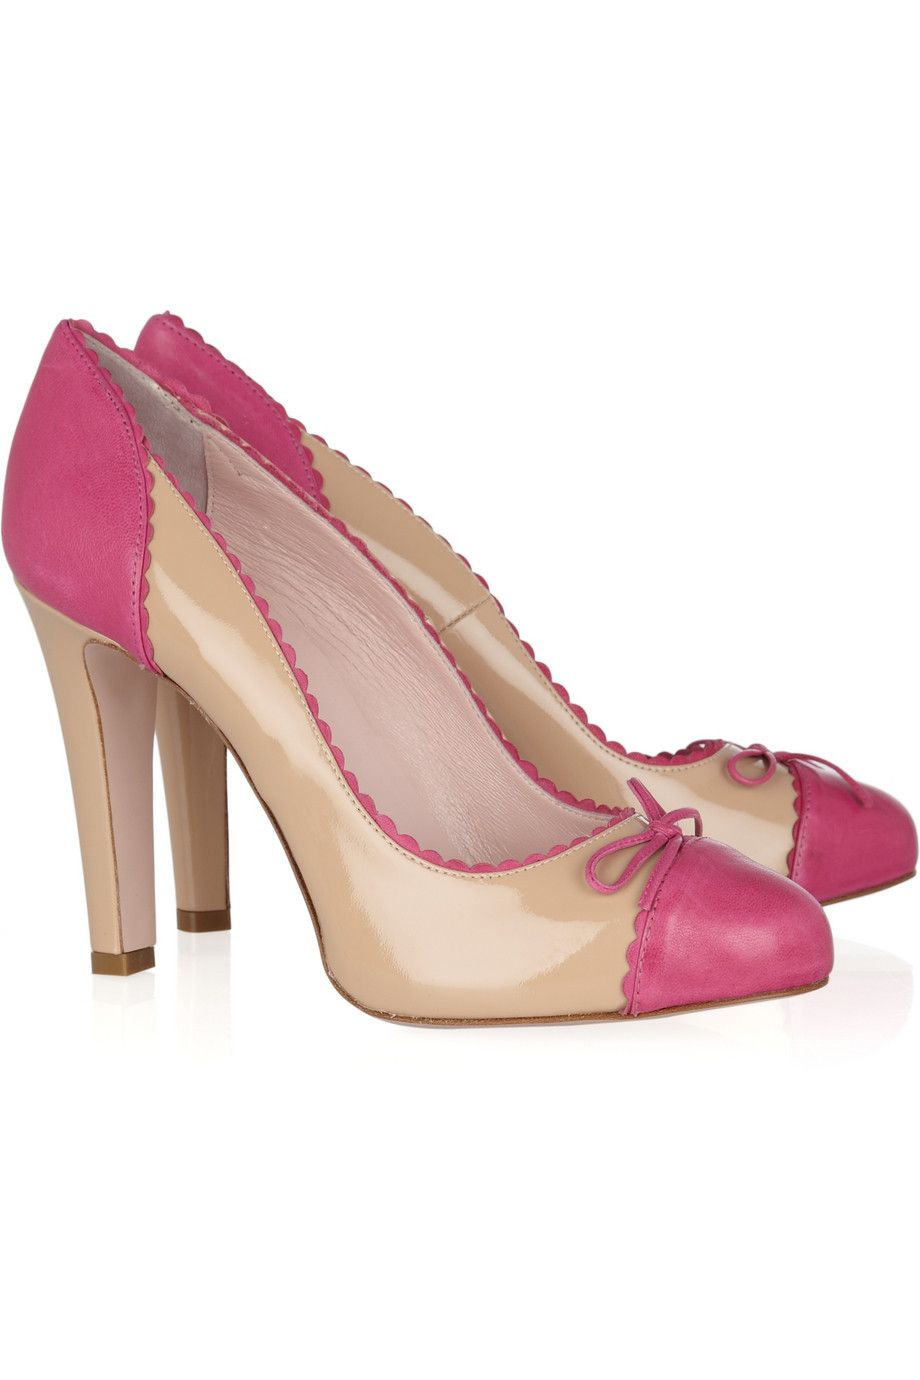 Pink leather pumps Red Valentino 685Pu